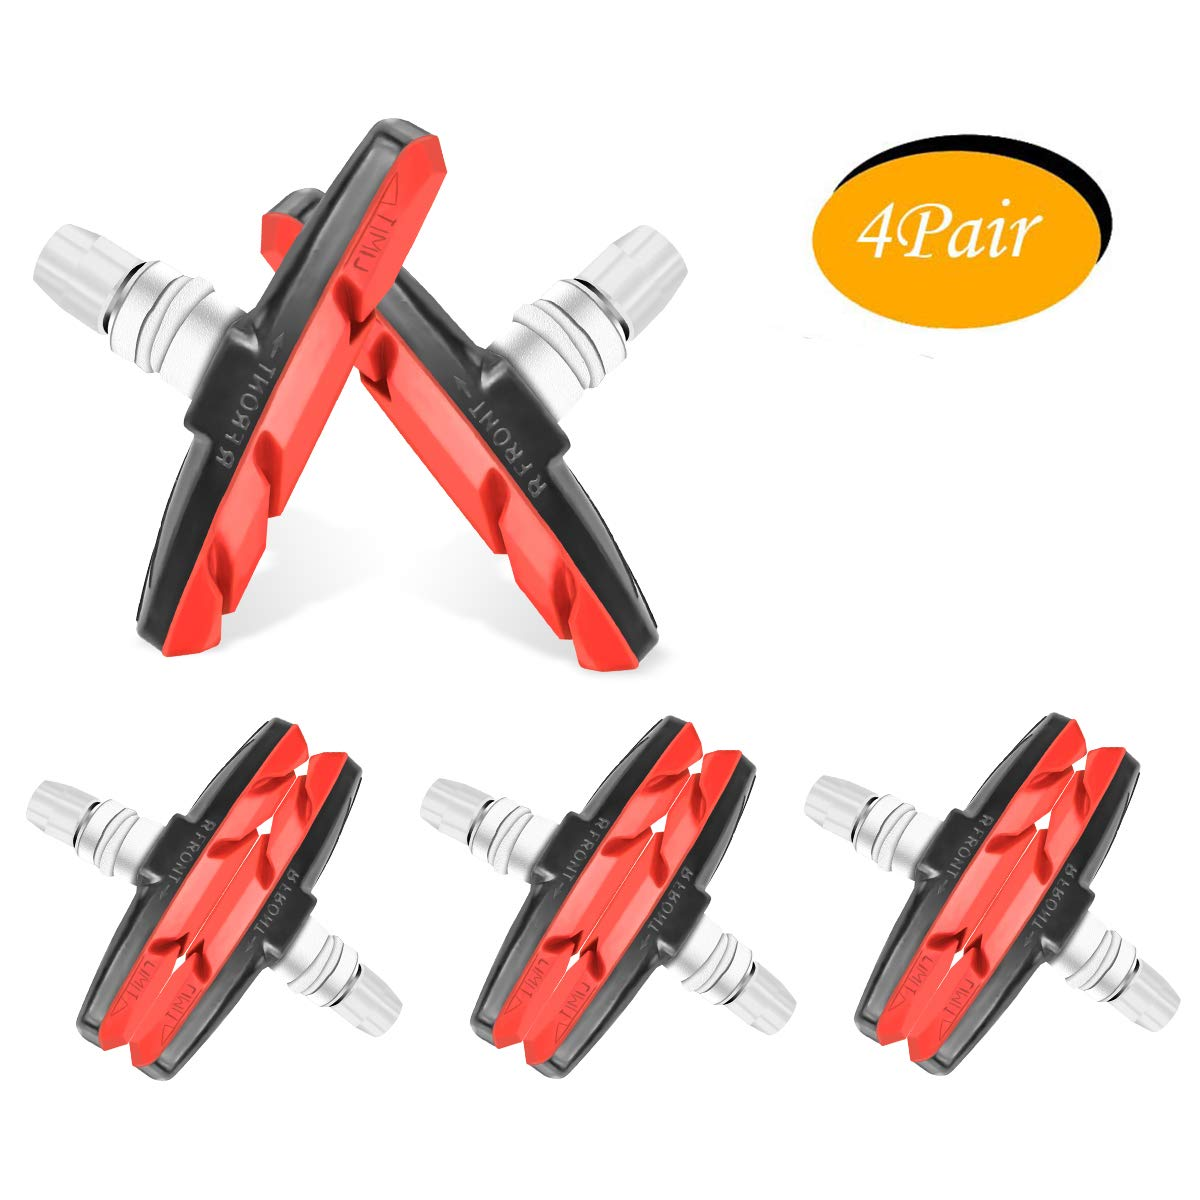 WTSHOP 4Pair V Bike Brake Pads with Hex Nuts and Spacers,Road Mountain Bicycle V-Brake Blocks Shoes (red)